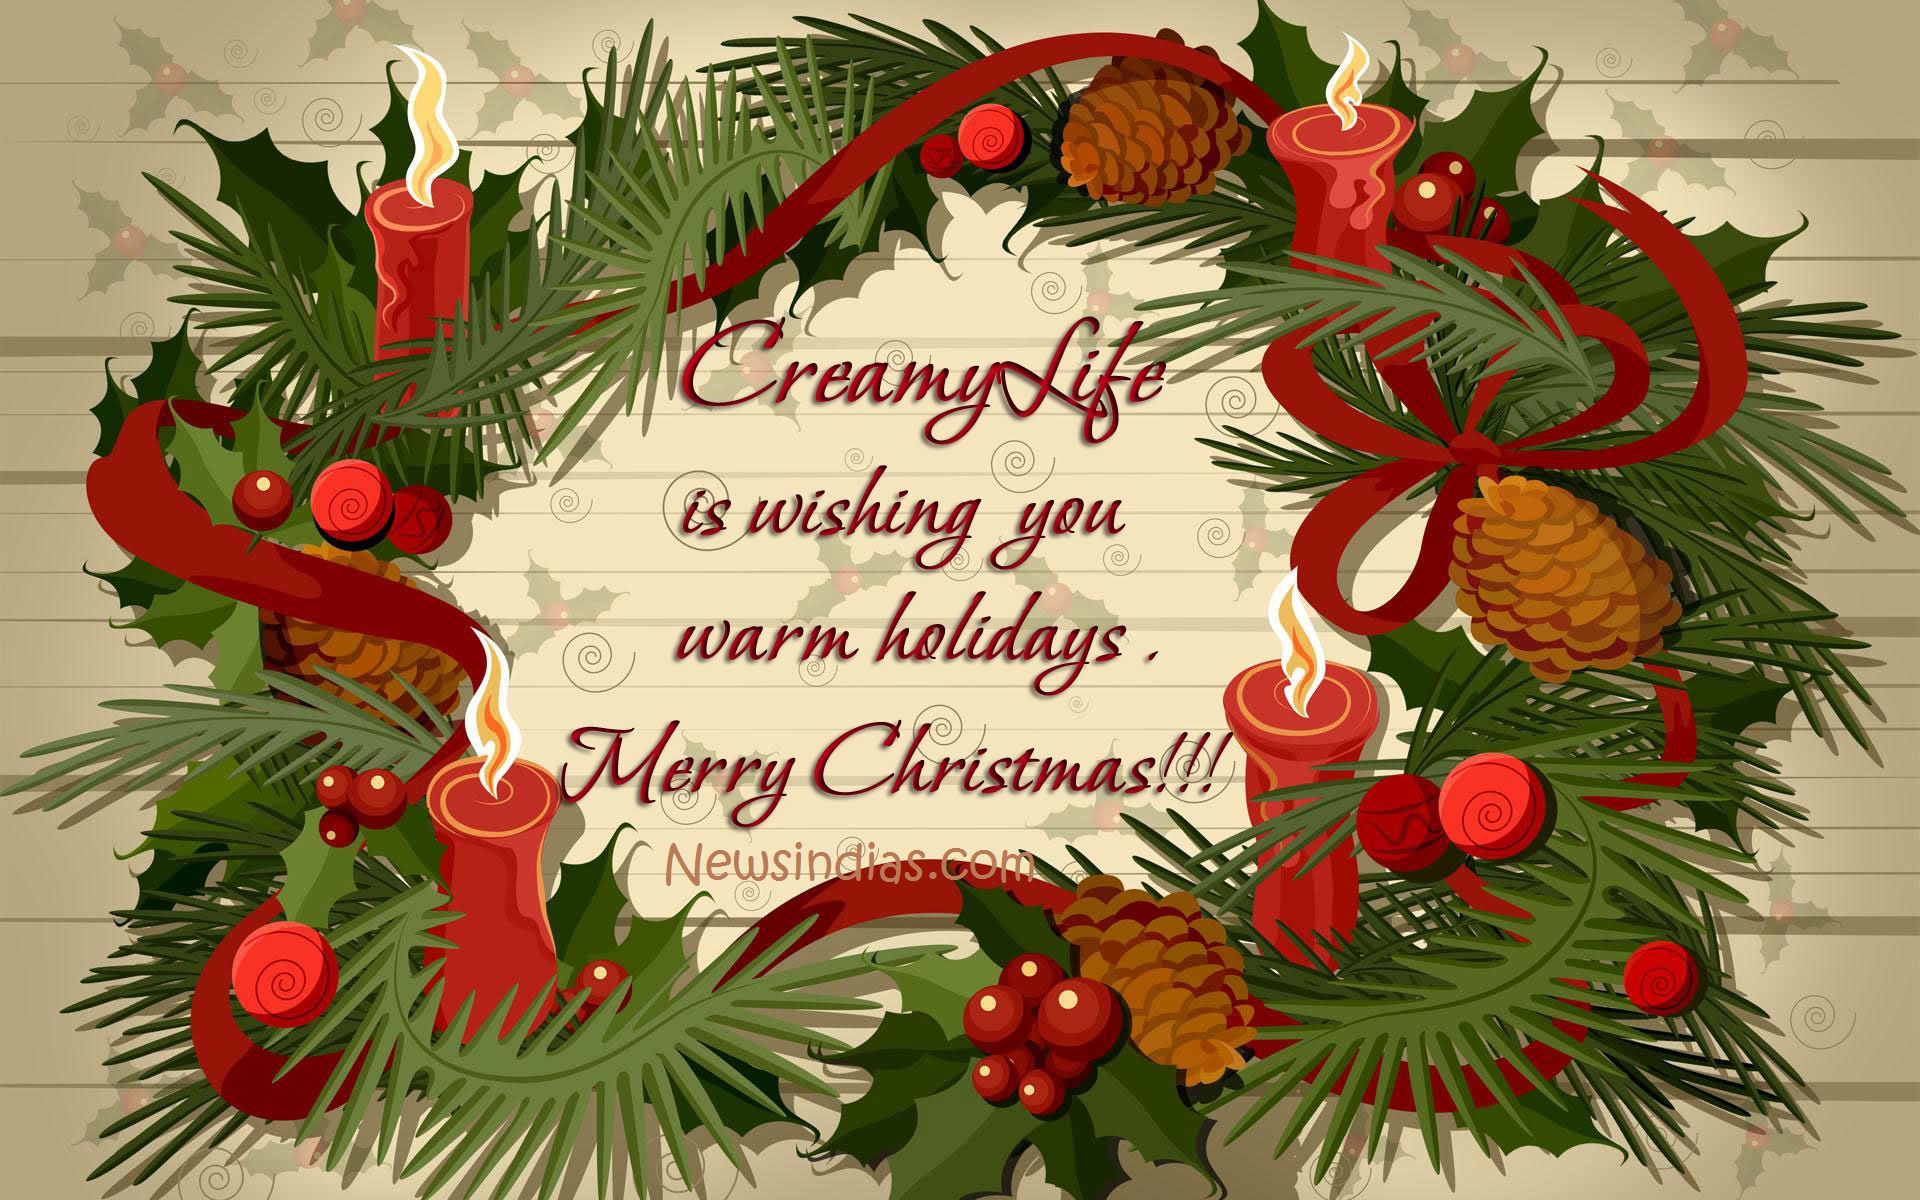 Special Christmas SMS Messages 2014 , Christmas greetings 2014